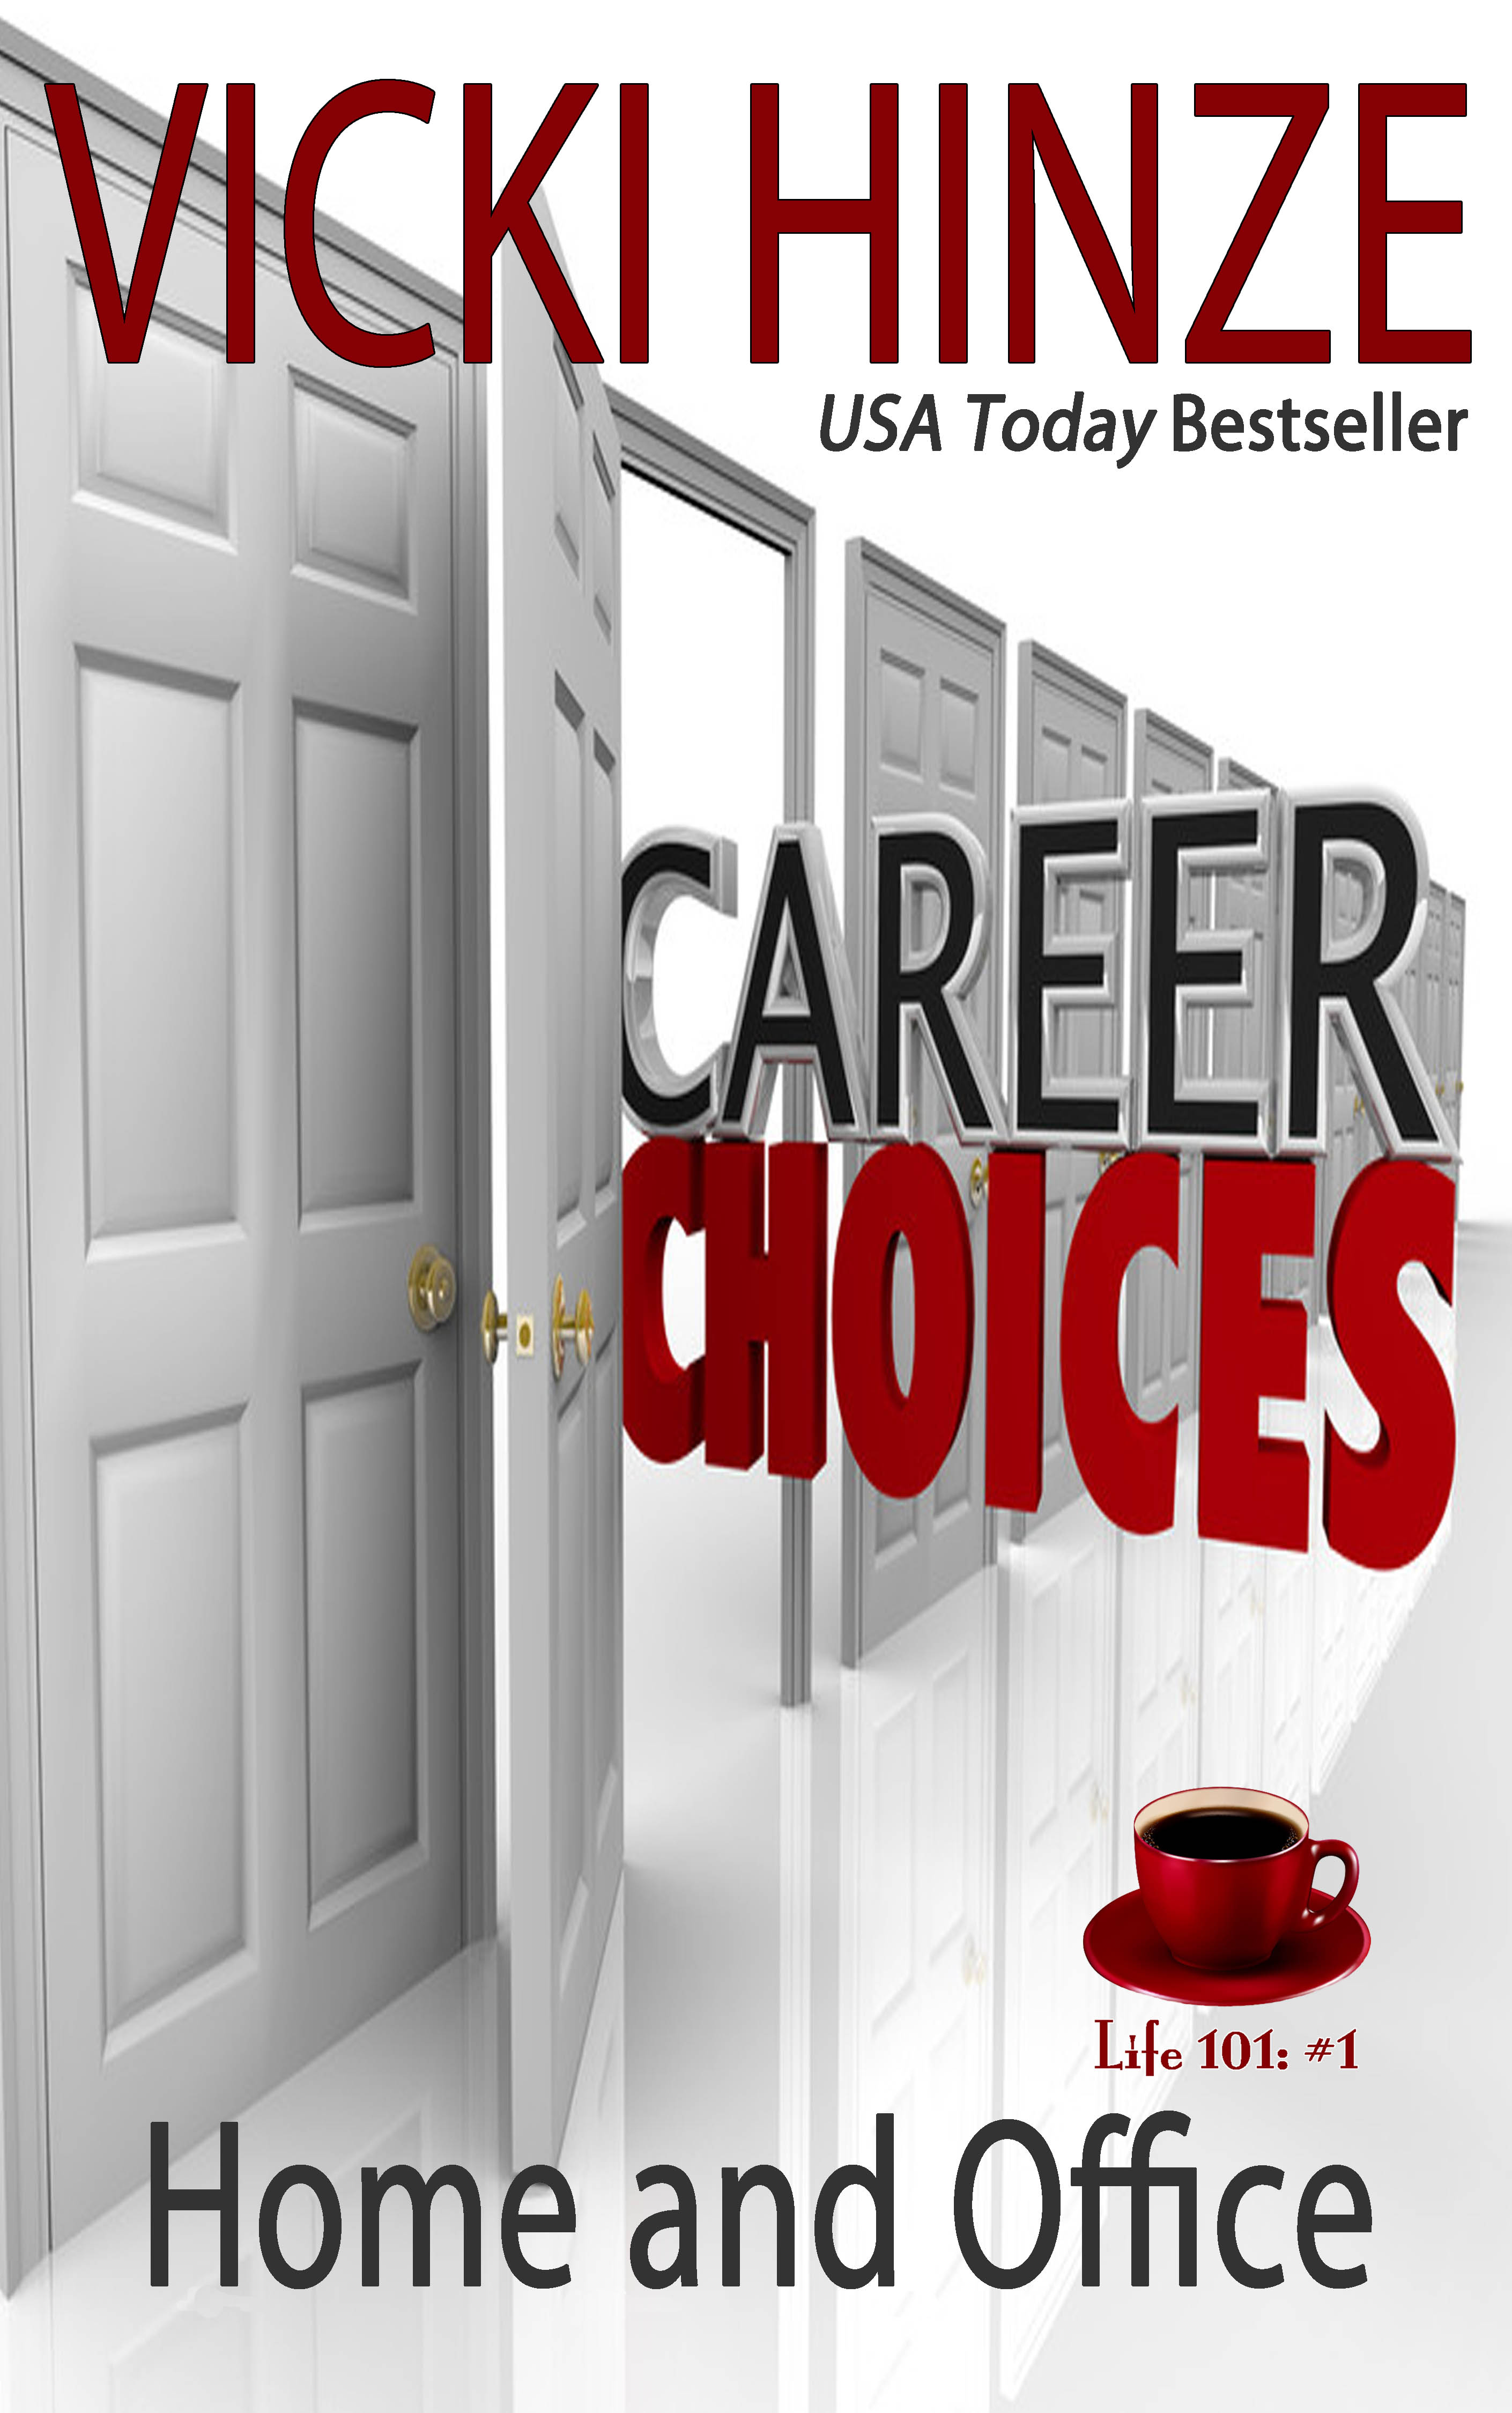 vicki hinze, career choices: home and office, Life 101 article series, #1